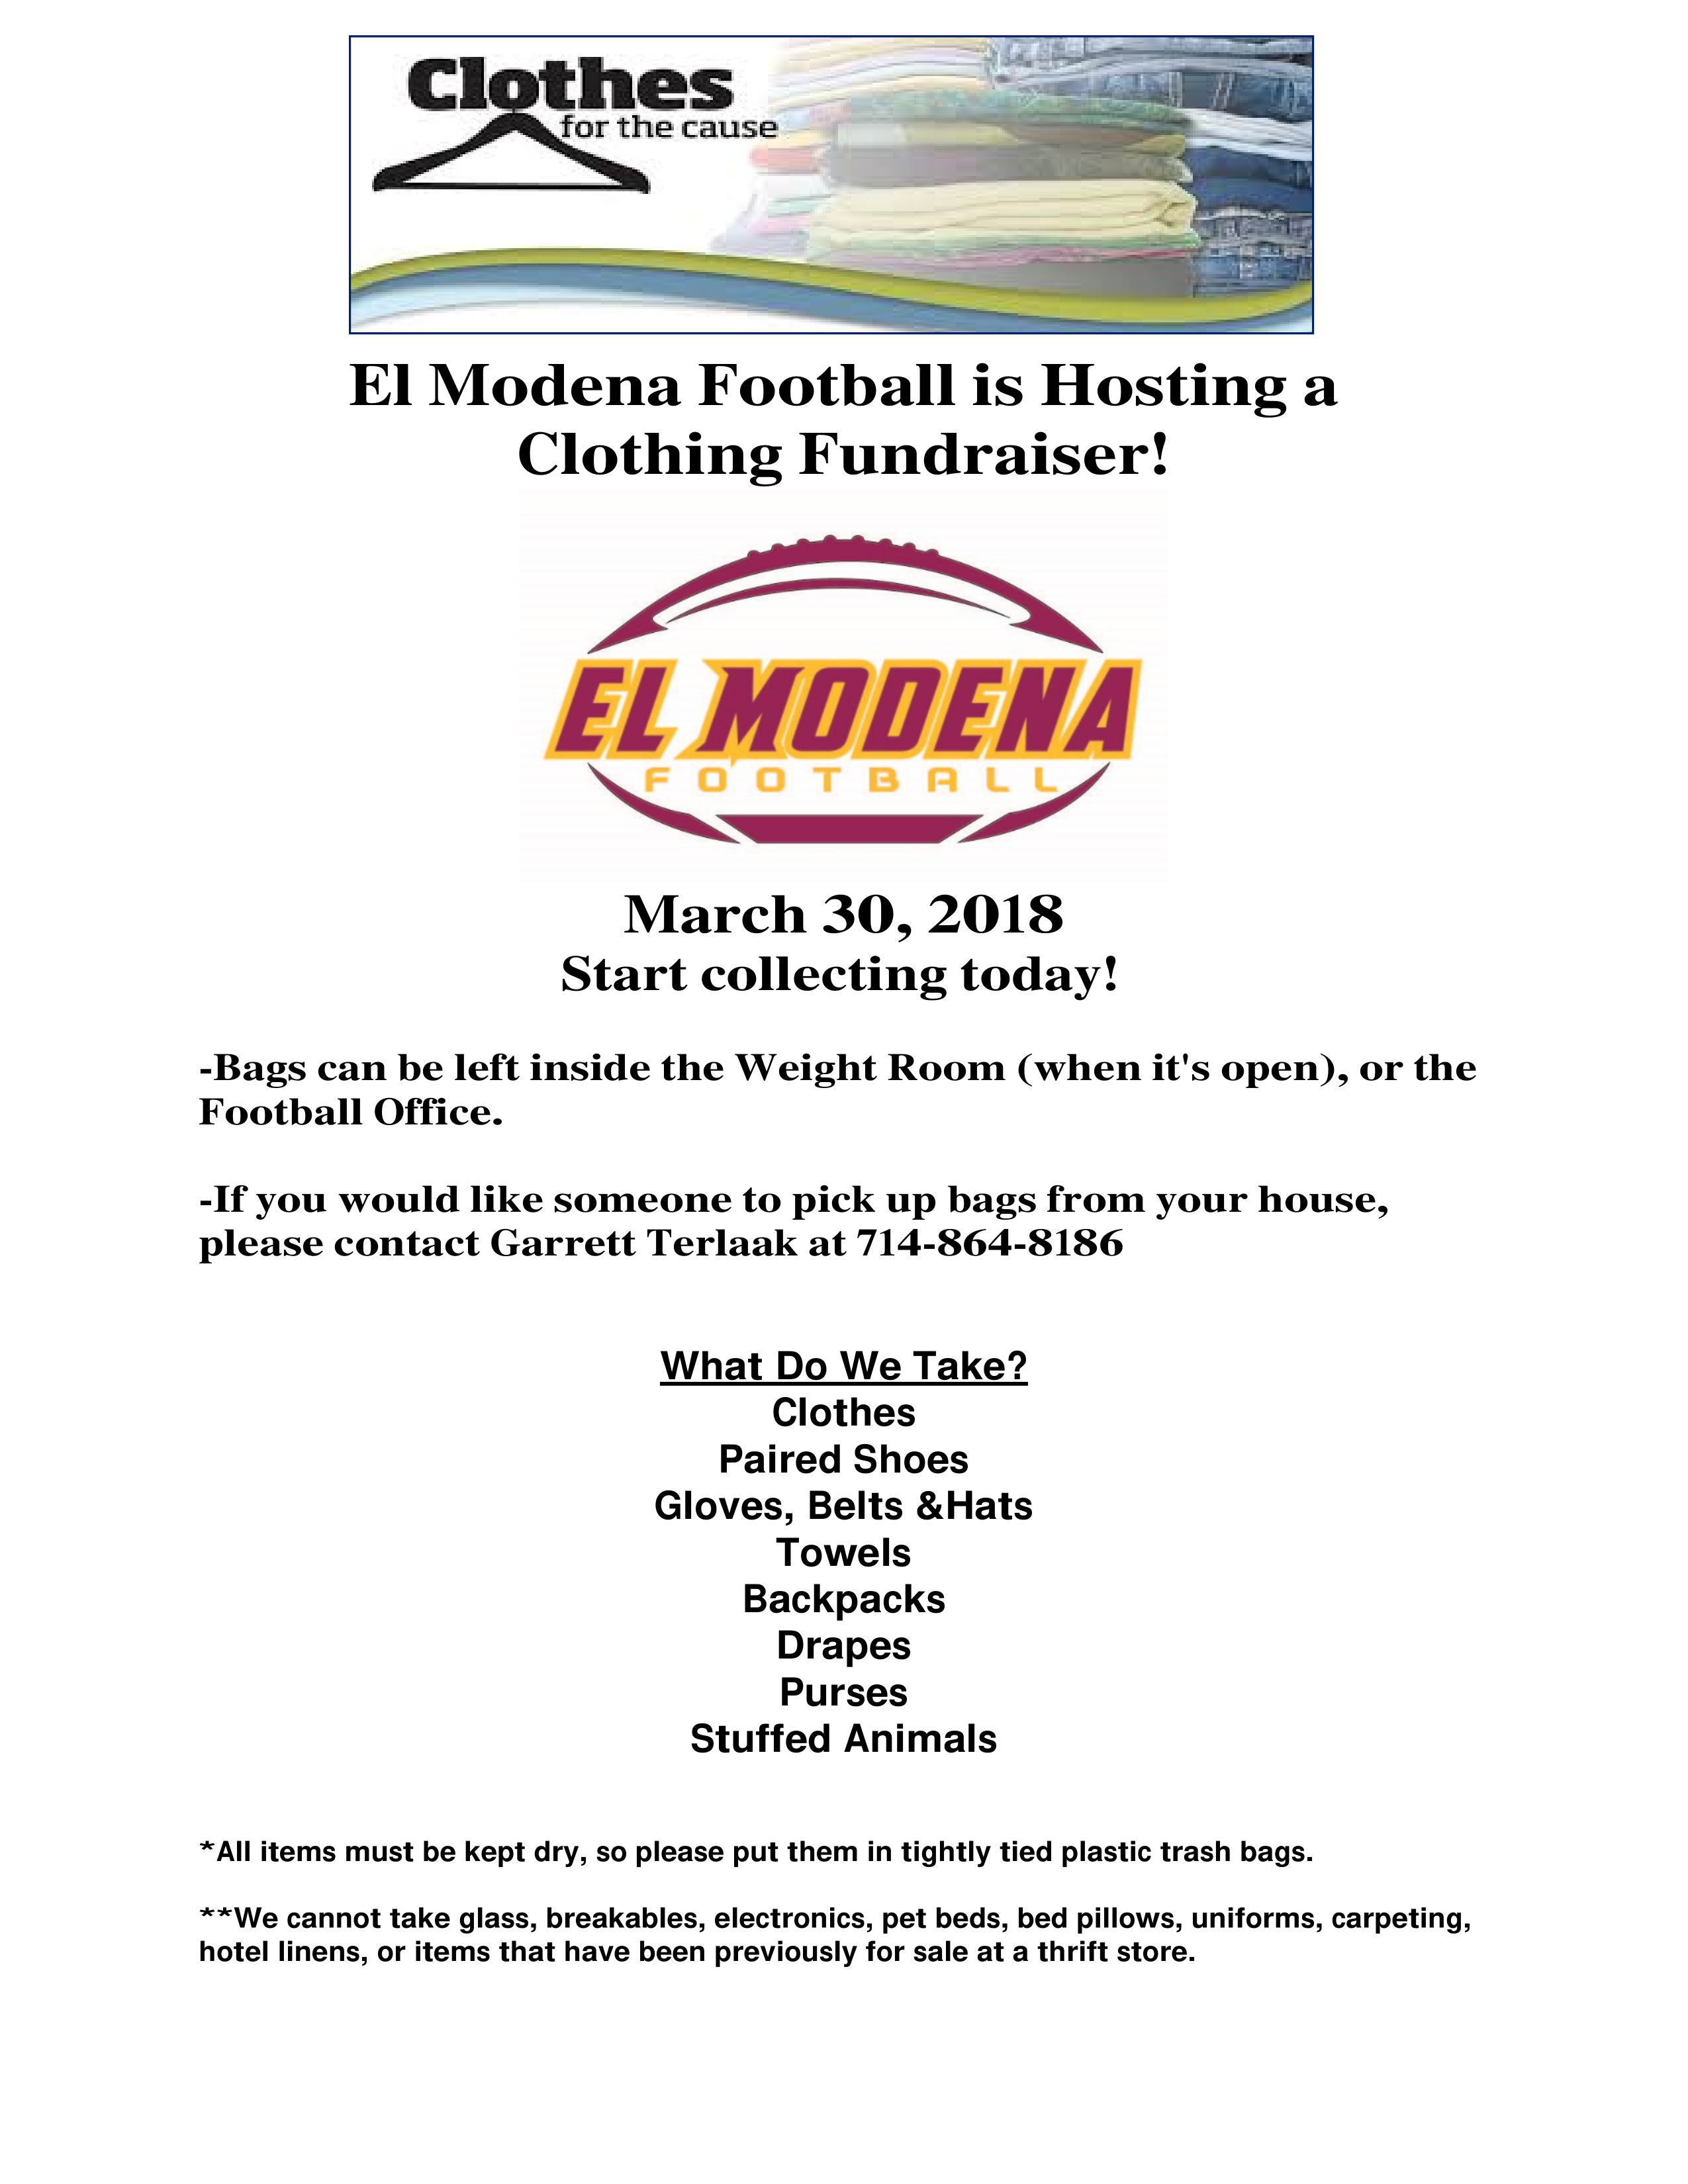 Football Clothing Drive Flyer 3/30